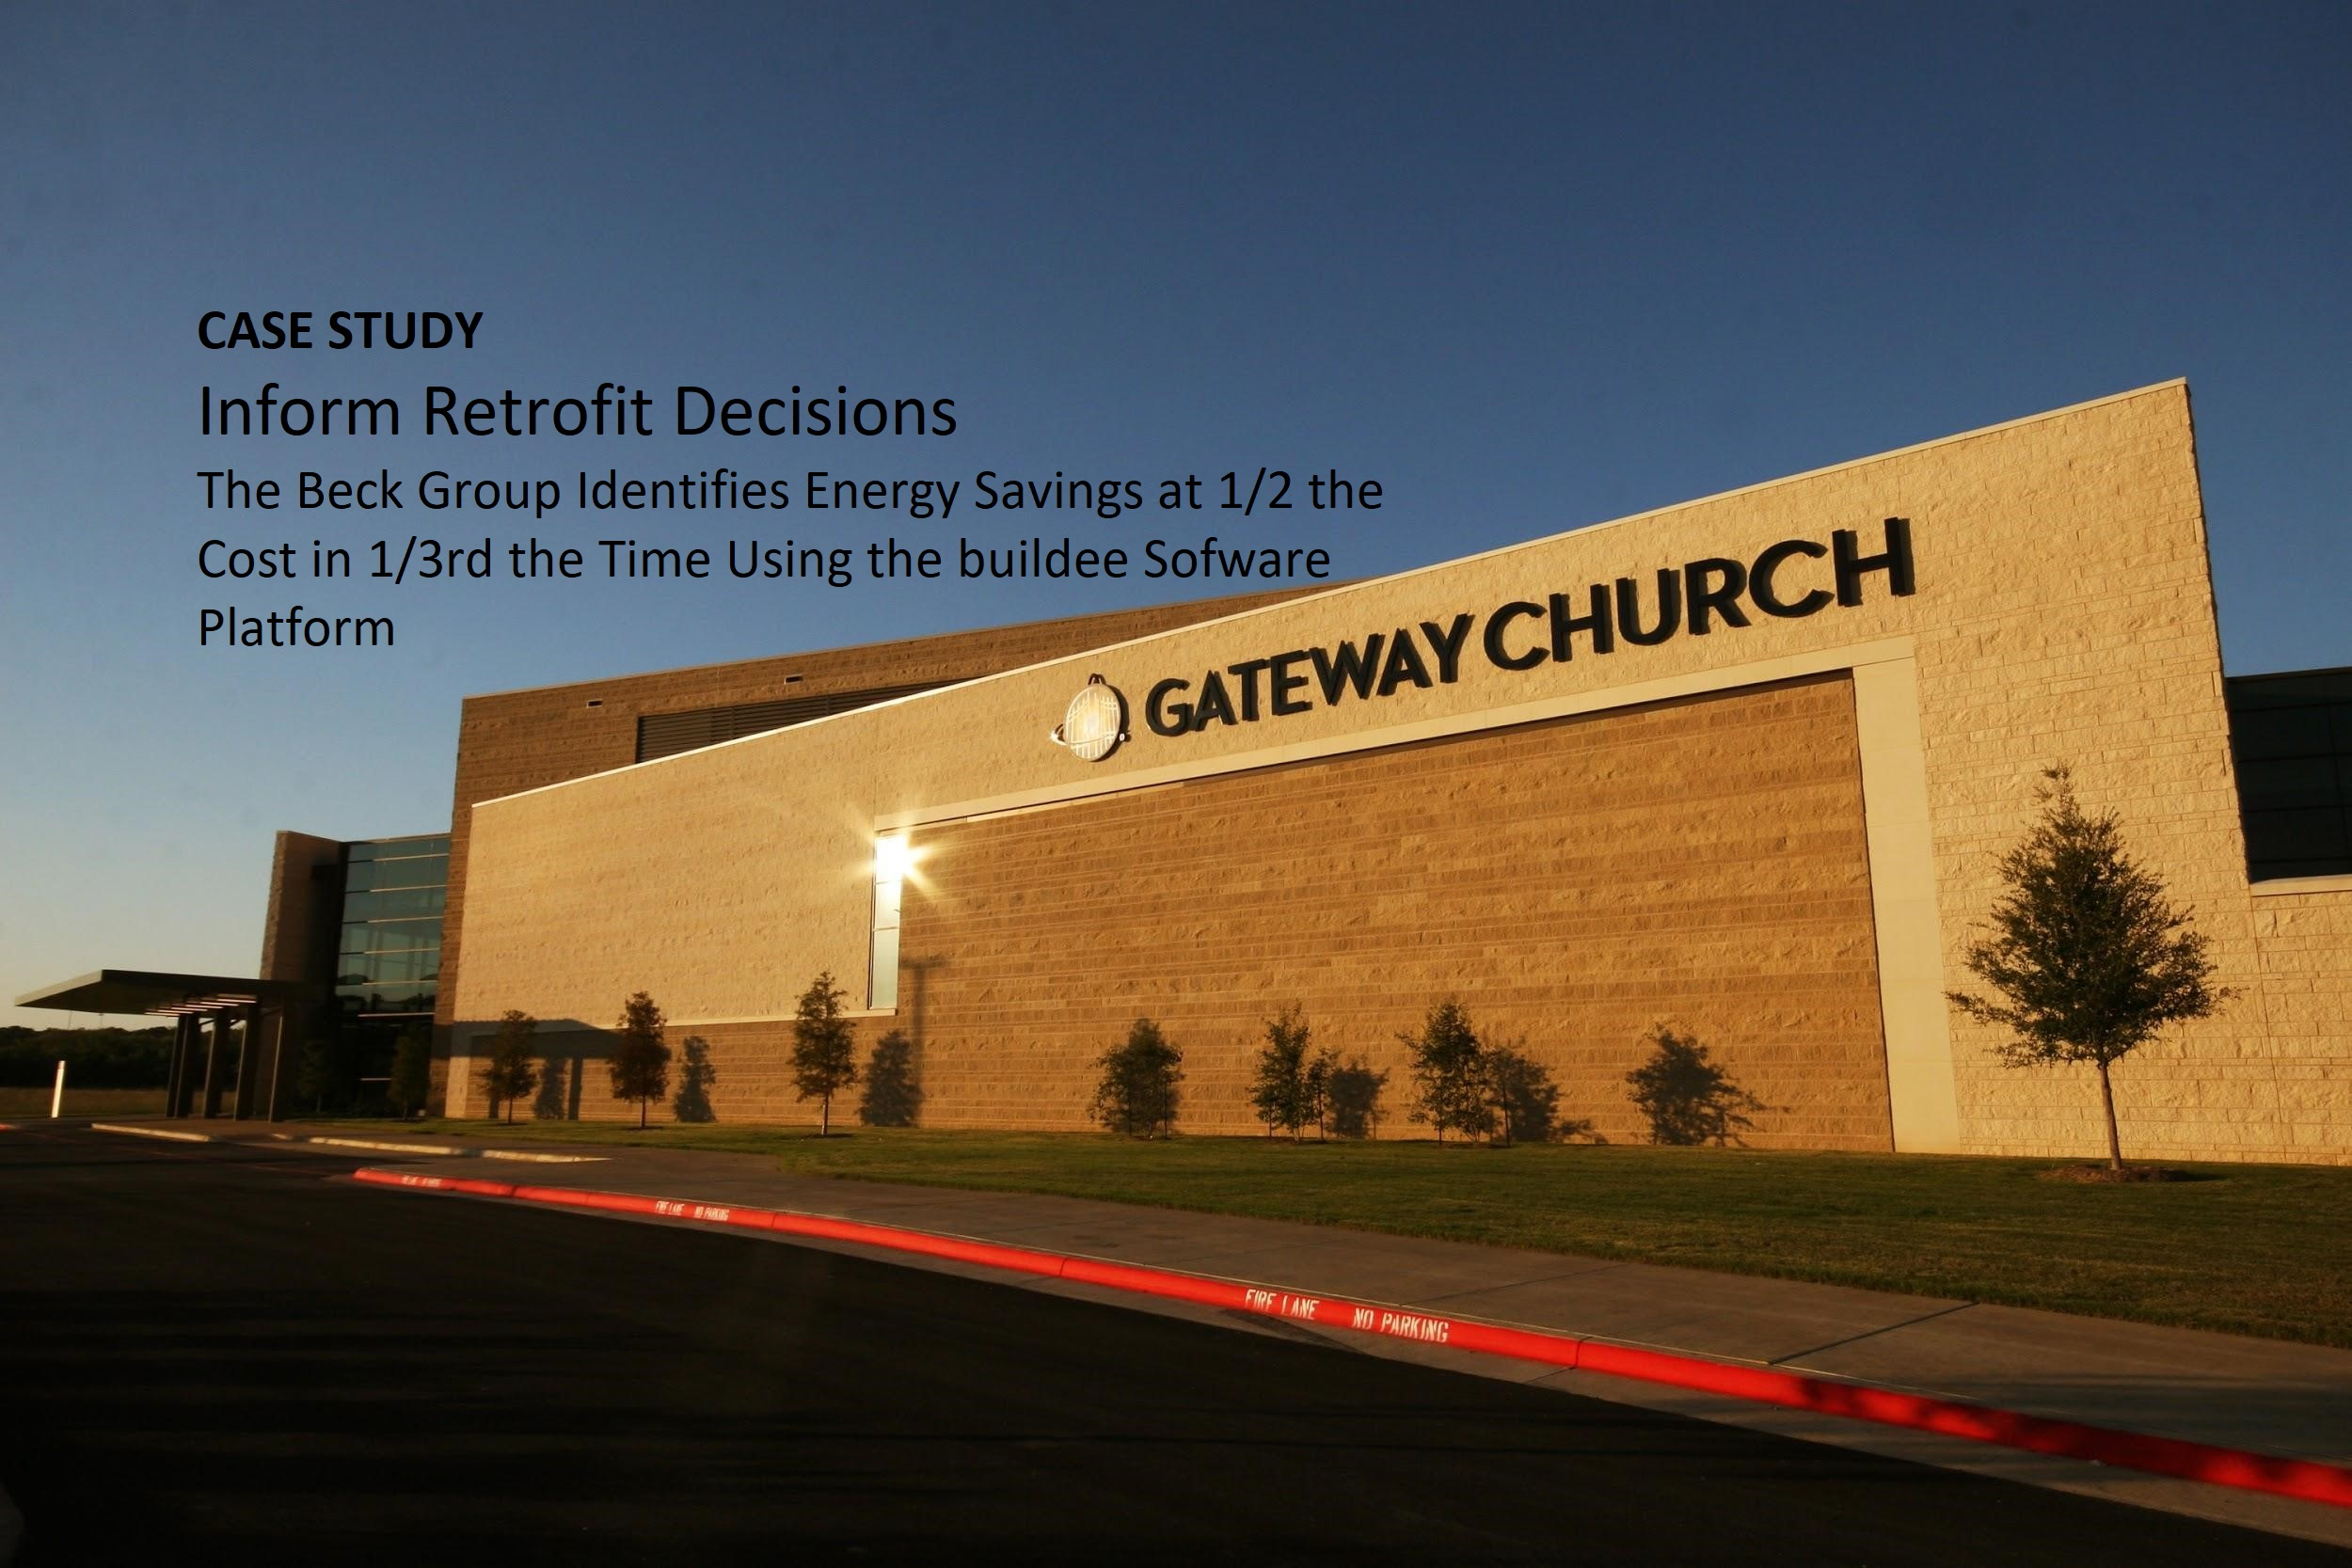 Gateway Church Image - With Text-2